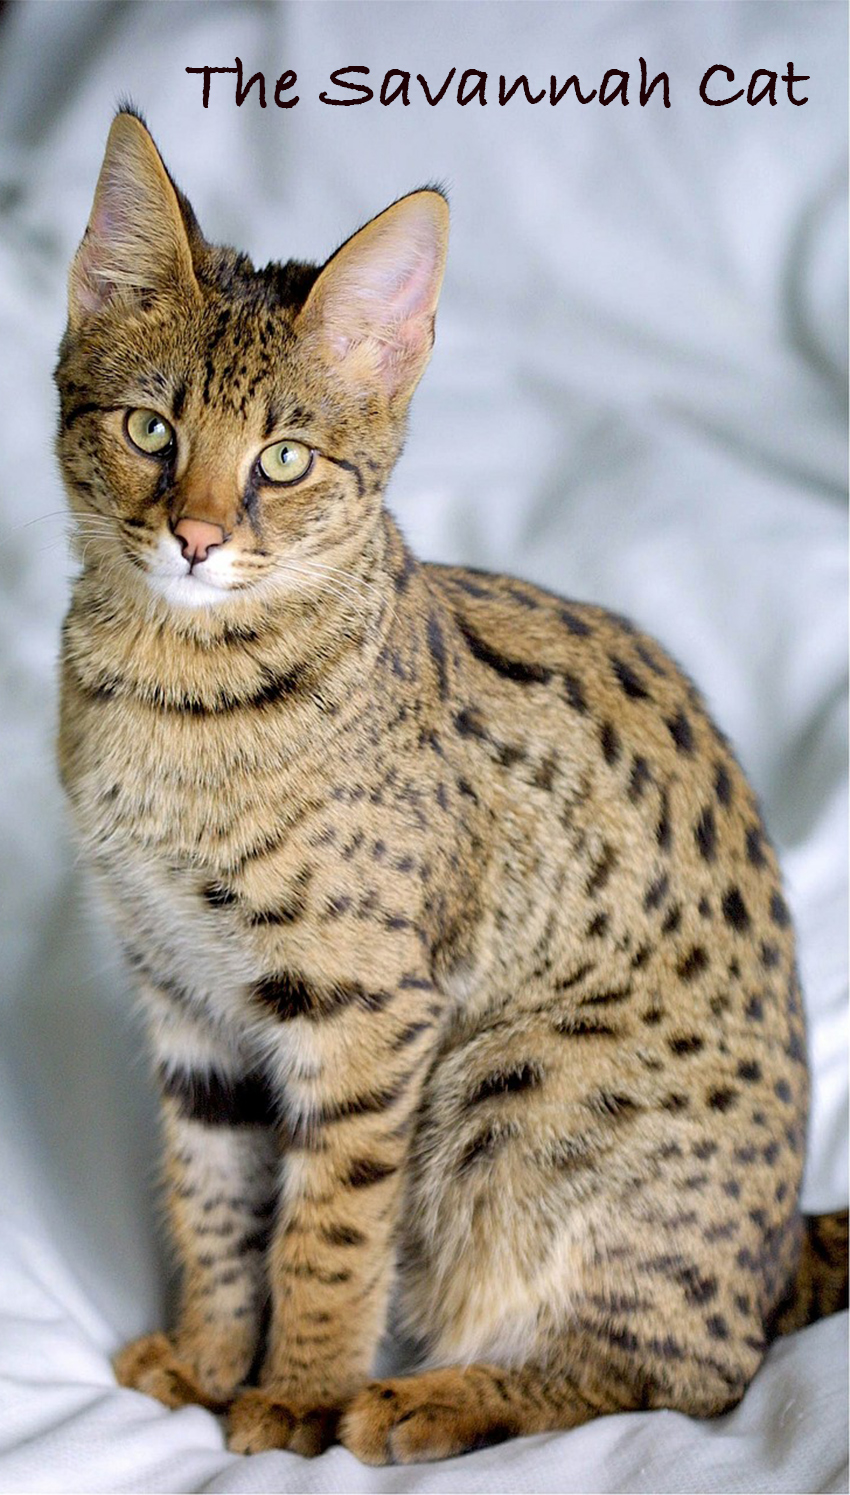 The Savannah cat is an exotic cat breed